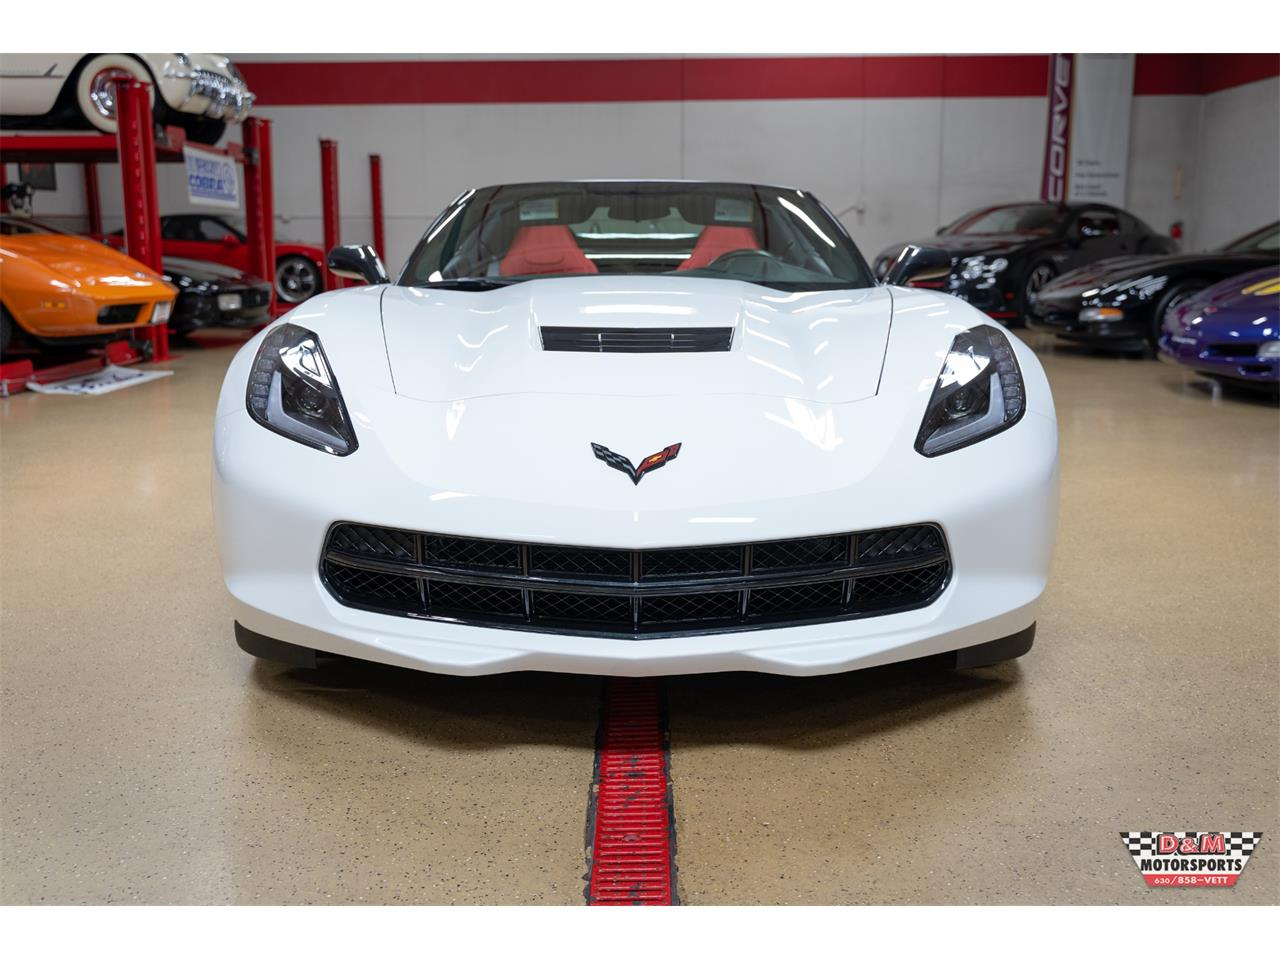 Large Picture of 2016 Corvette located in Illinois - $44,995.00 Offered by D & M Motorsports - R2HE